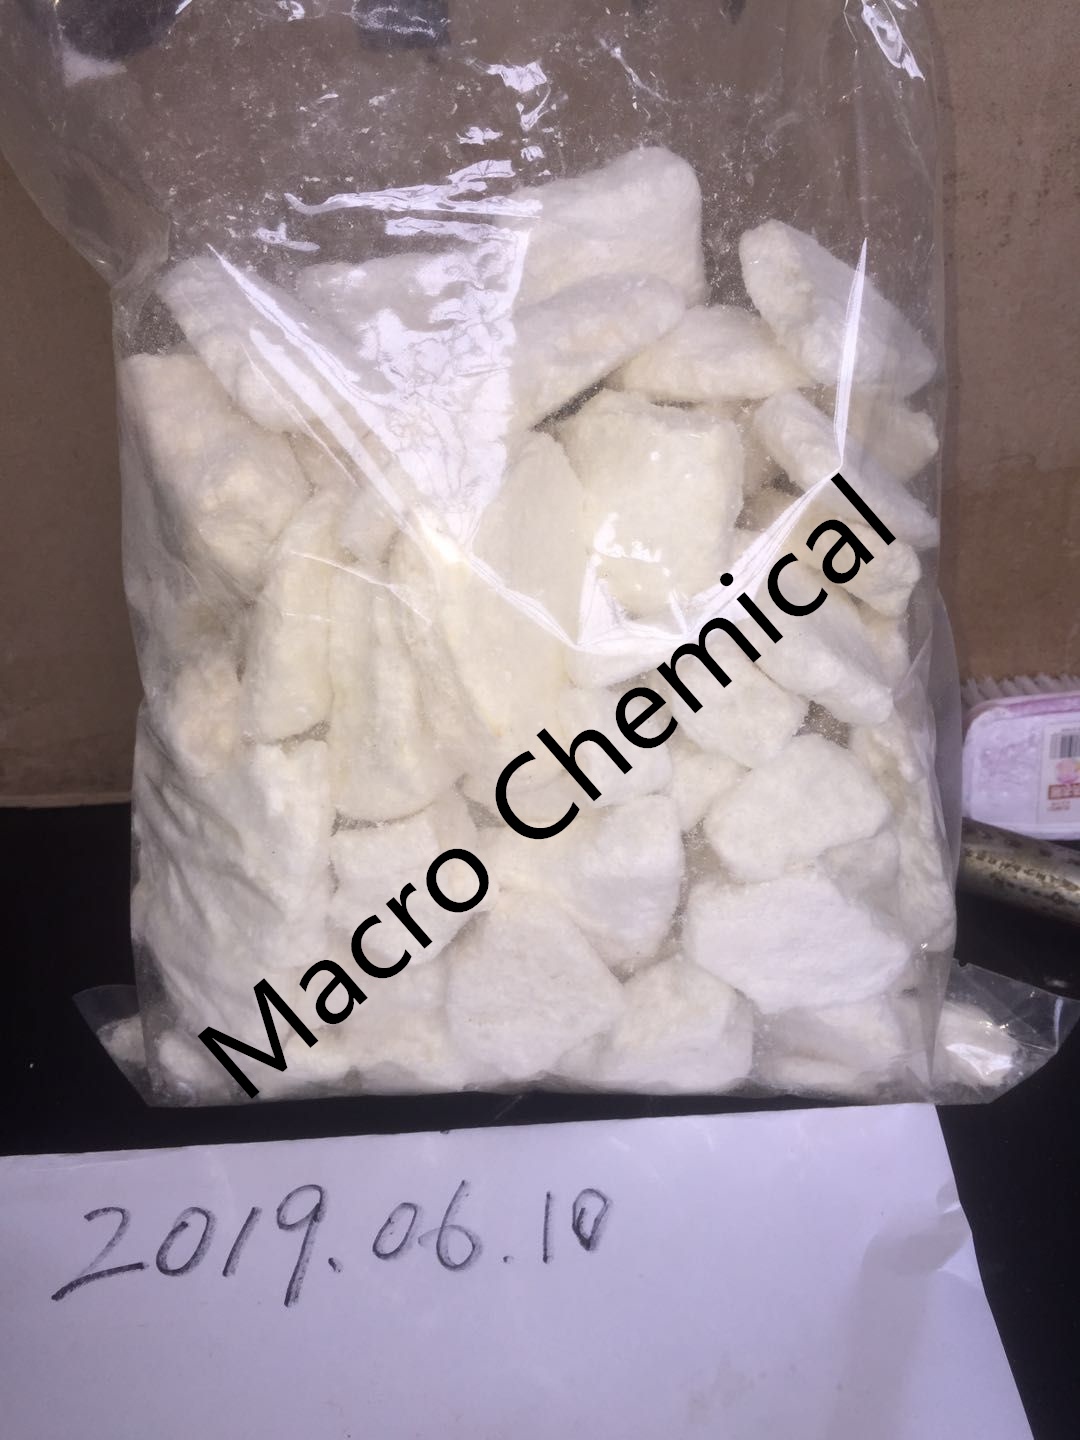 HEP High quality white hep Crystal Research Chemical Stimulants